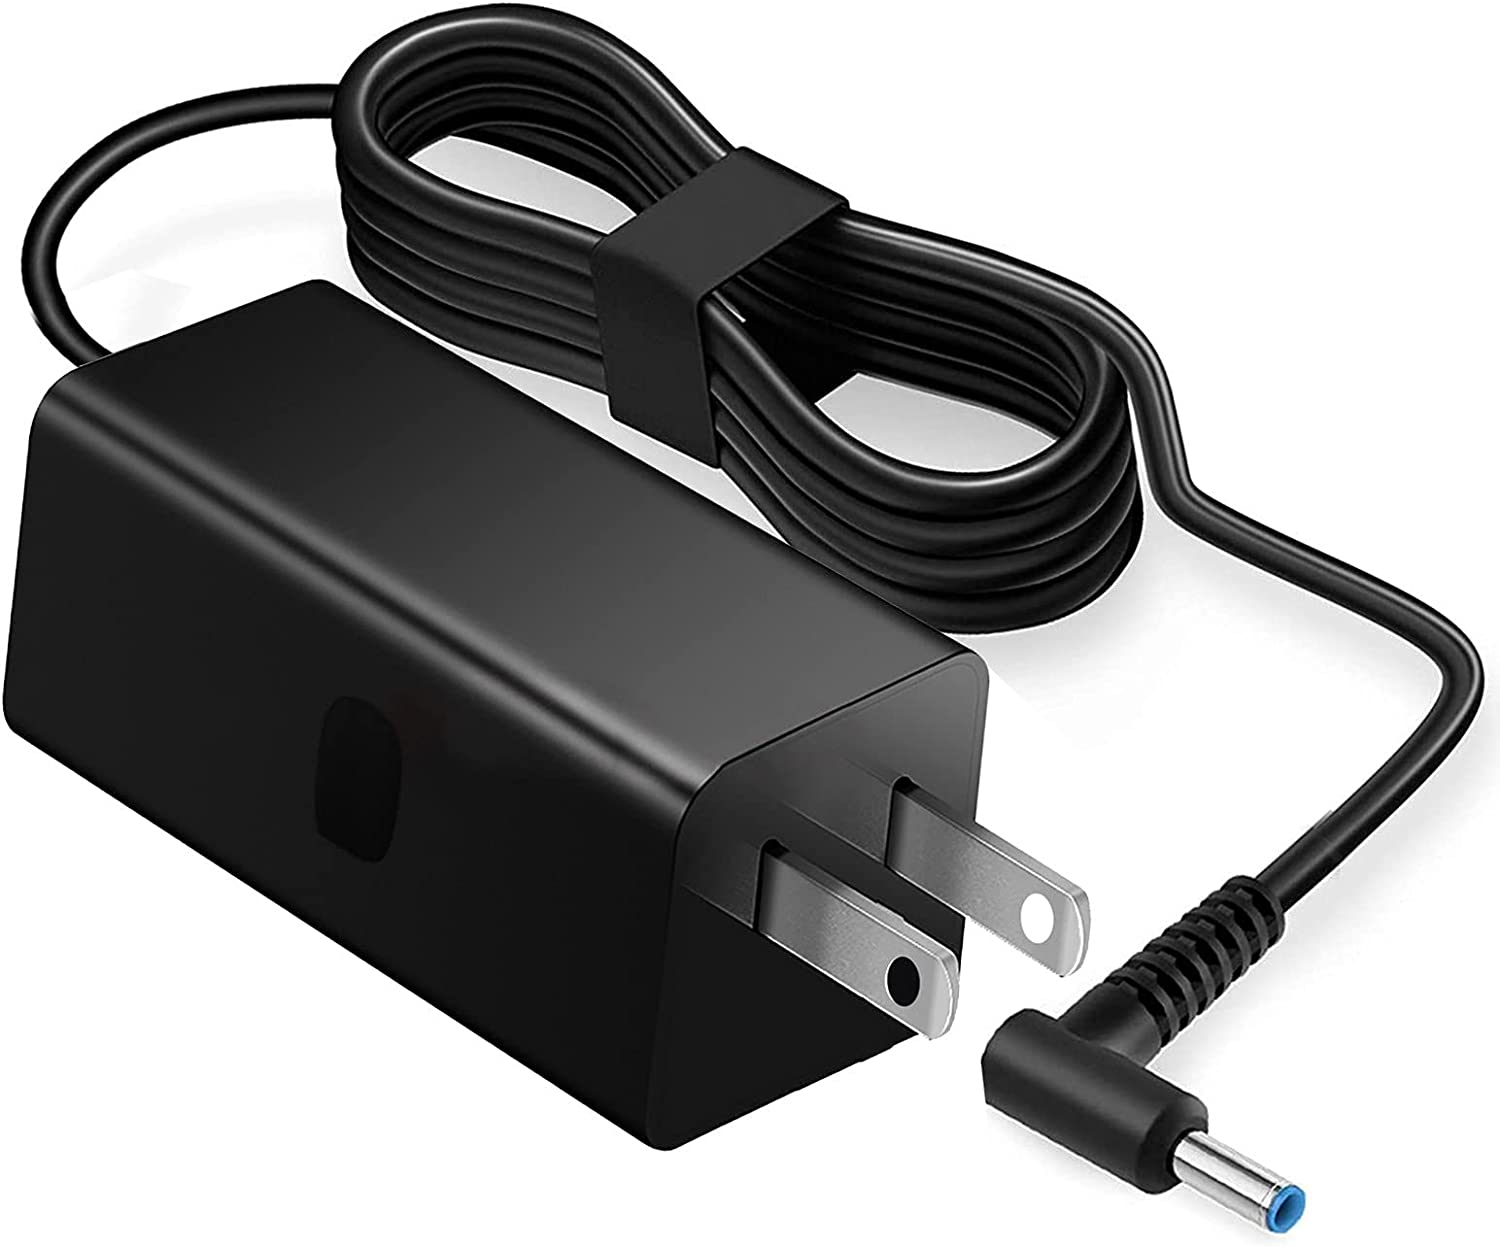 19.5V 3.33A 2.31A 65W 45W 741727-001 709985-002 Ac Adapter Charger for HP Pavilion 15-F 15-F009WM 15-F023WM 15-F039WM 15-F059WM 15-f272wm 15-f387wm 15-f233wm 15-f222wm 15-f211wm 15-f337wm HSTNN-DA40